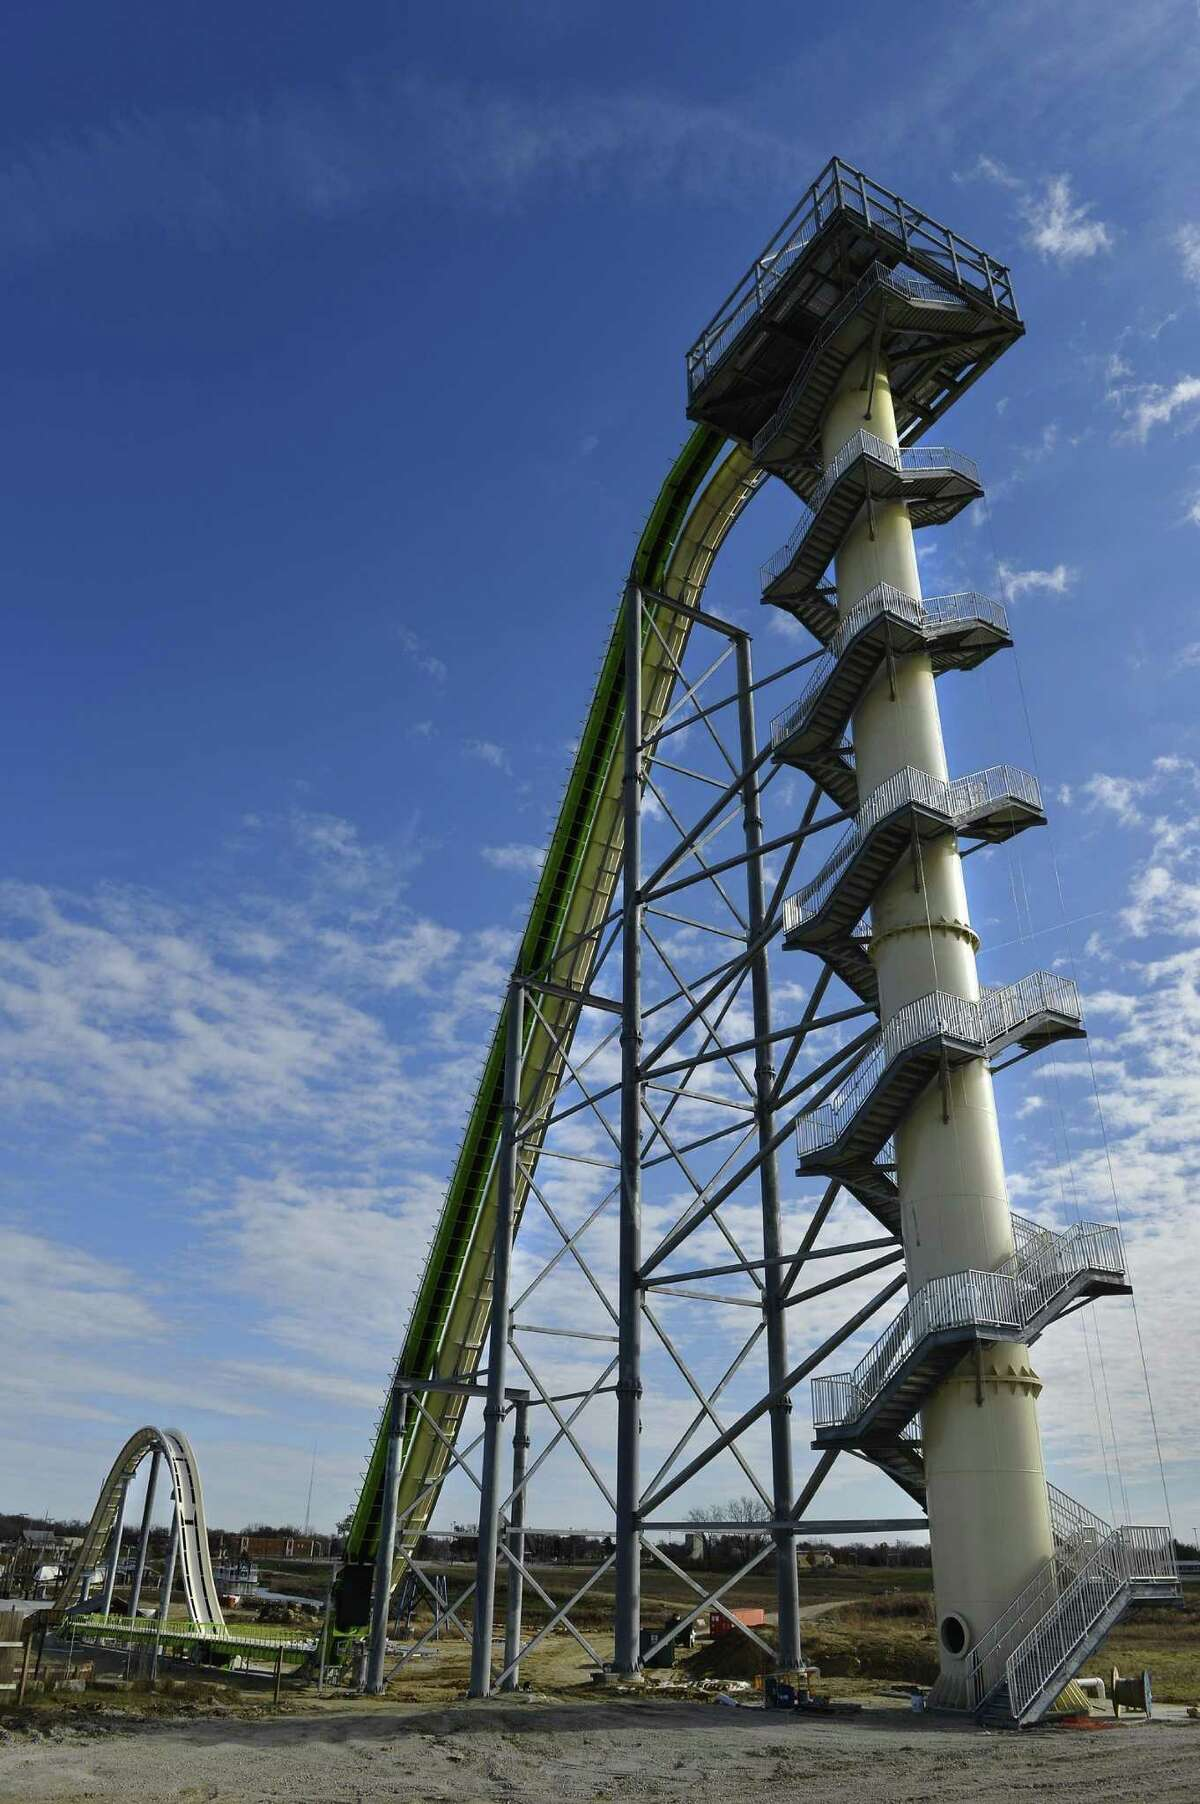 Schlitterbahn Waterpark's Verrückt slide on which Caleb Thomas Schwab died Sunday in Kansas City, Kan., is to remain closed for the rest of the season.